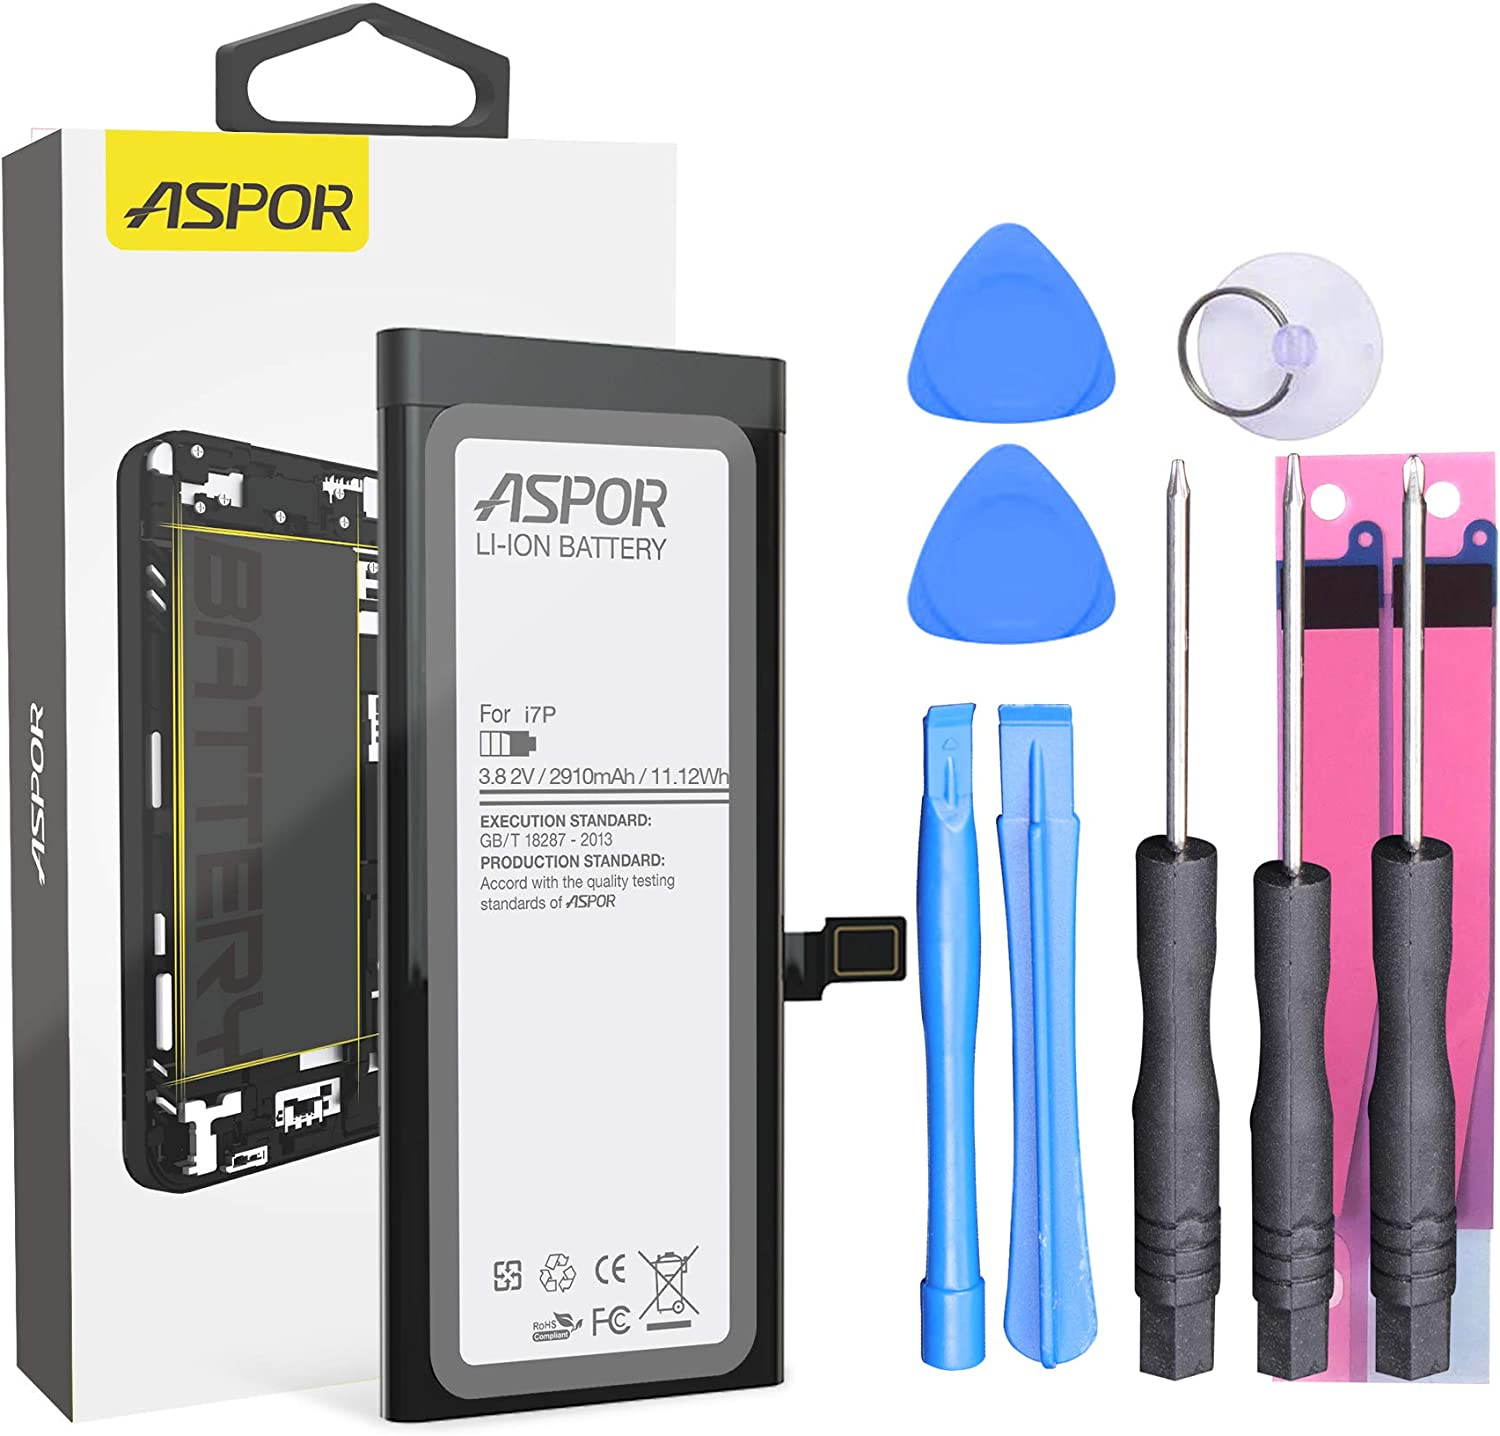 ASPOR Battery Replacement Compatible with iPhone 7 Plus, 2910 mAh Battery for iPhone 7 Plus with Complete Repair Tool Kits & Adhesive Strips